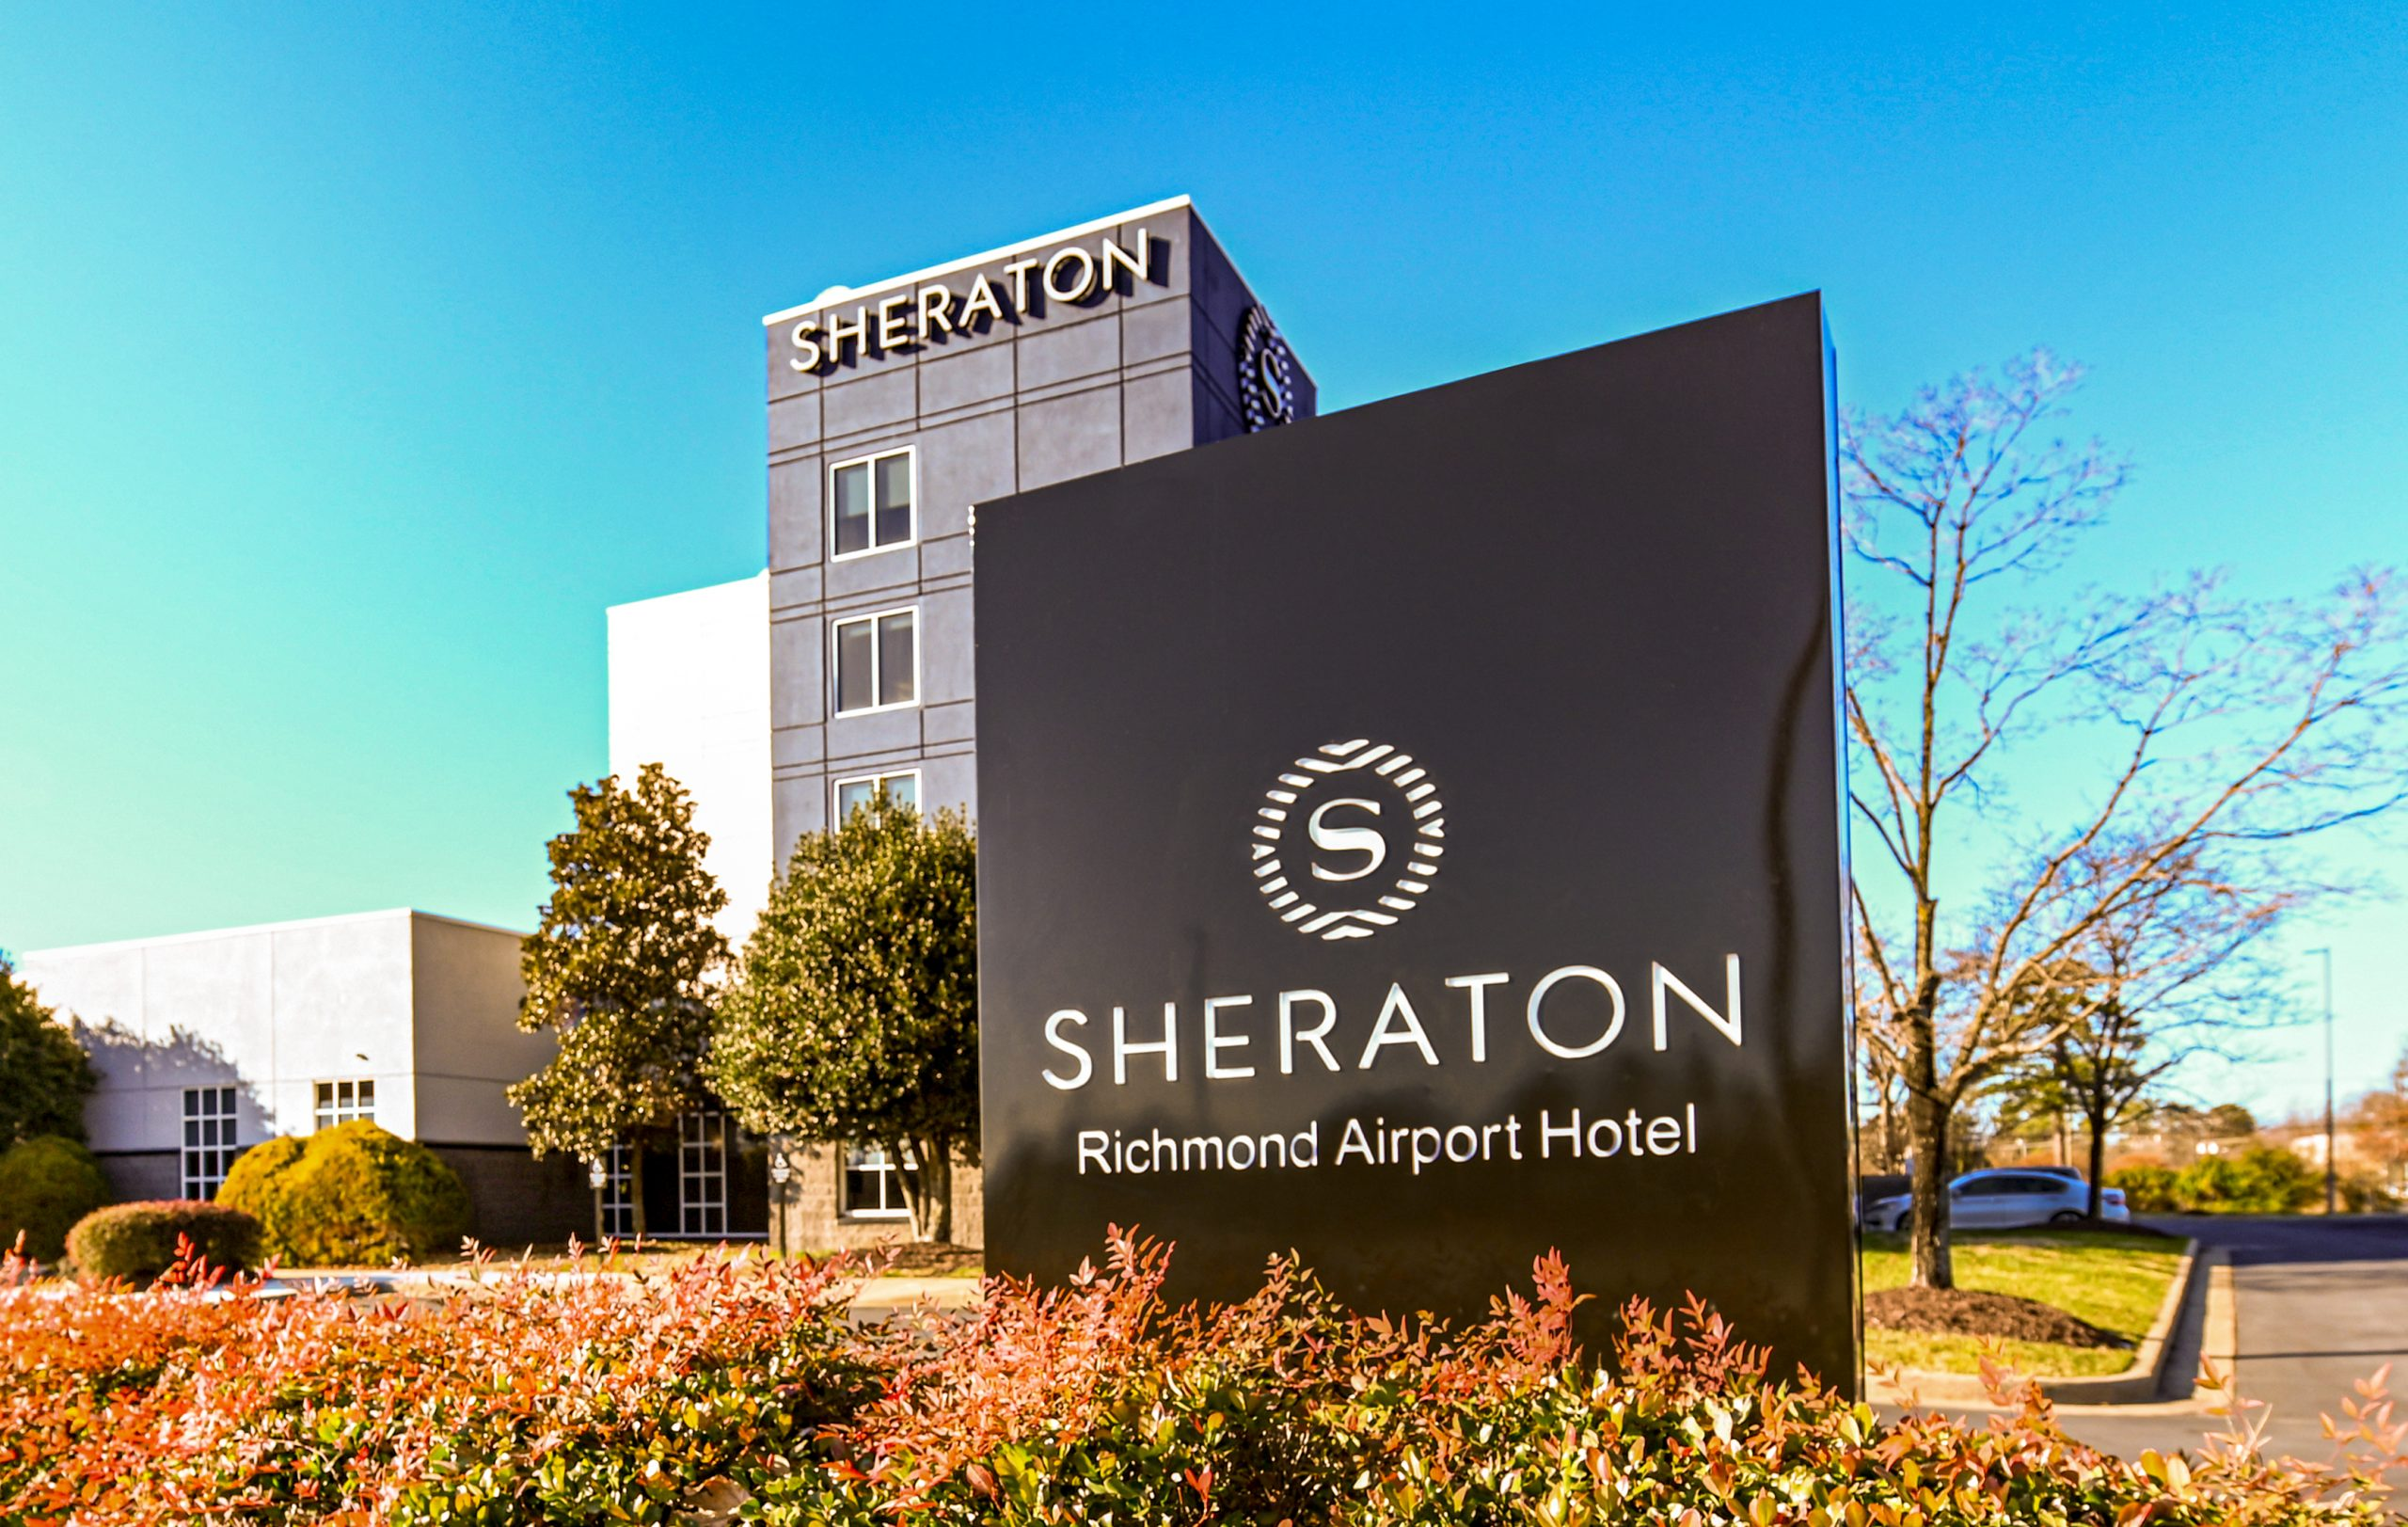 Introducing The New Sheraton Richmond Airport Hotel